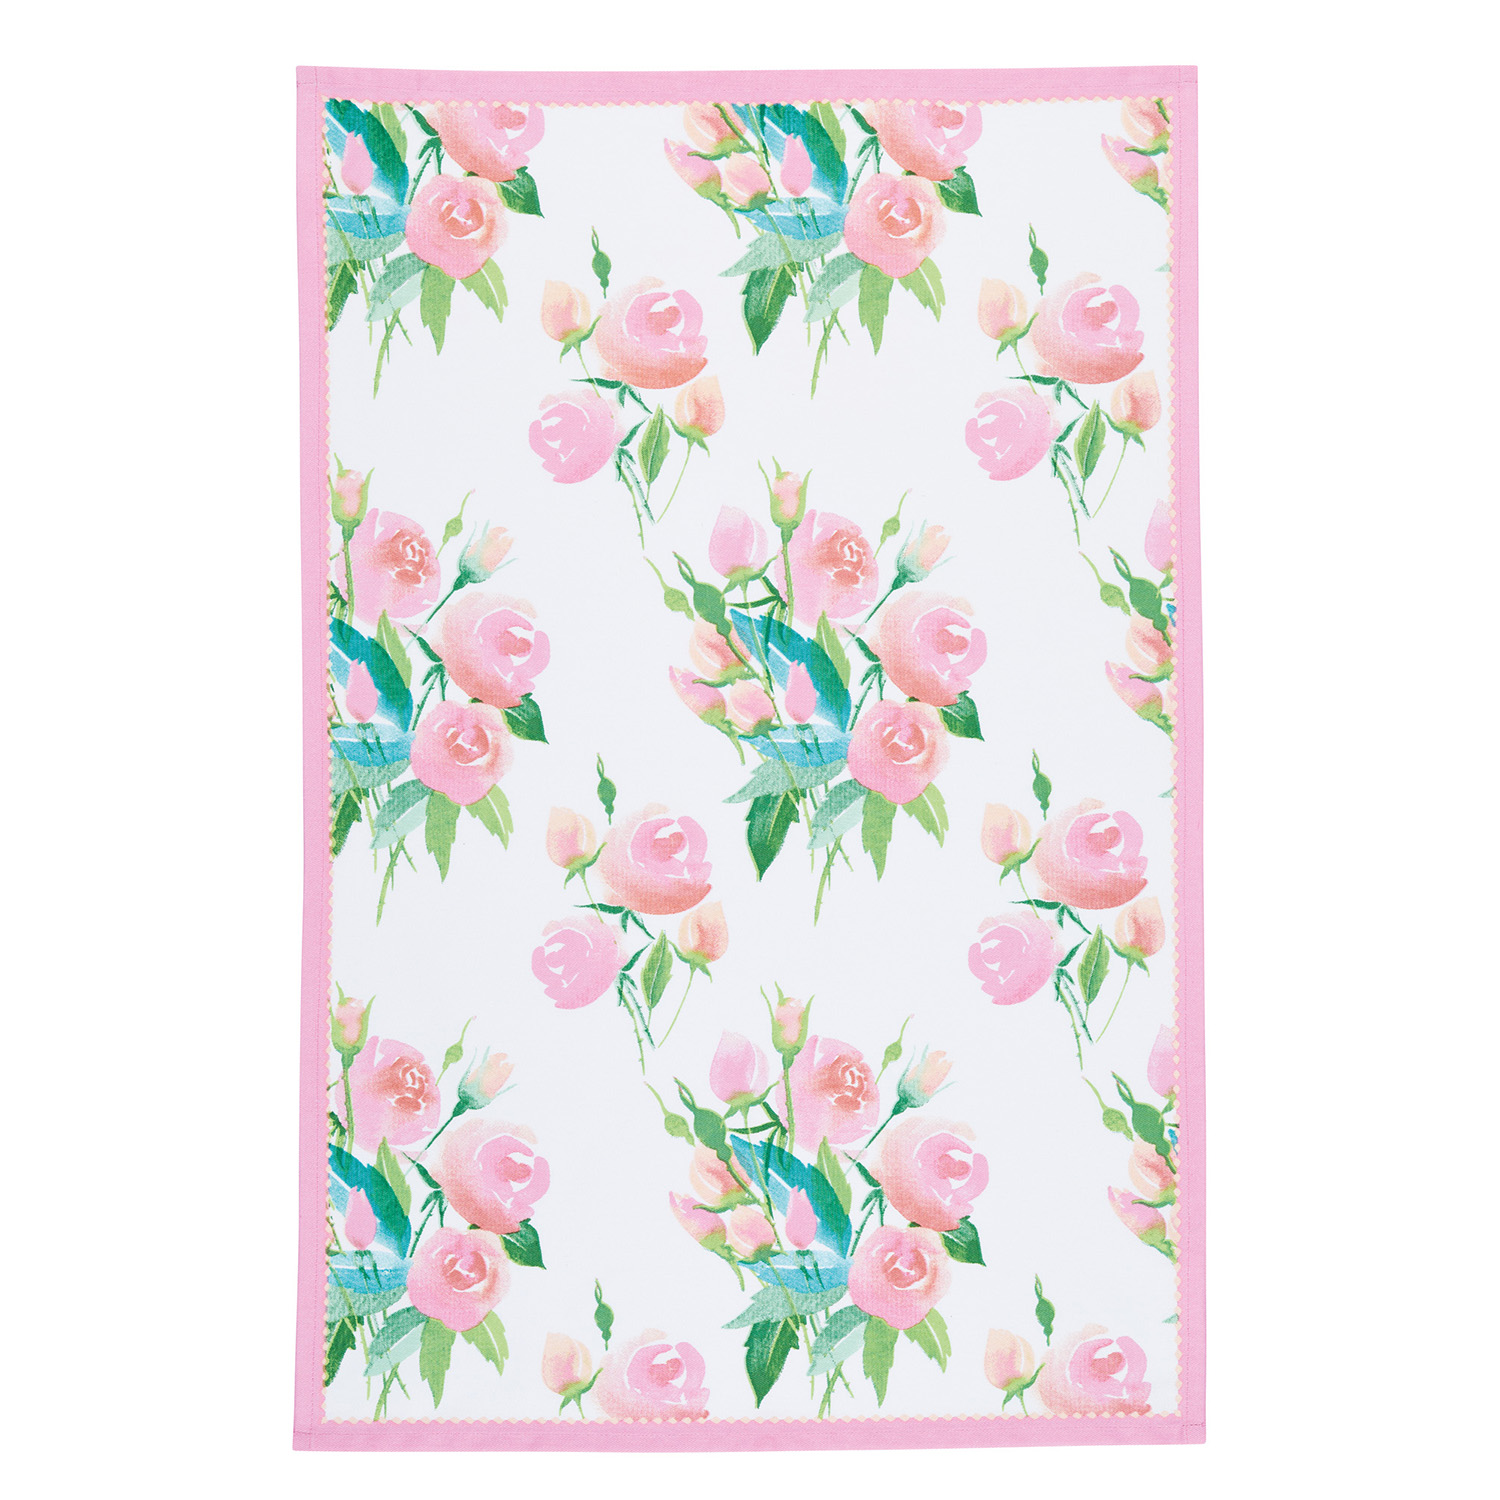 2 Pack Rose Tea Towels, Light Pink